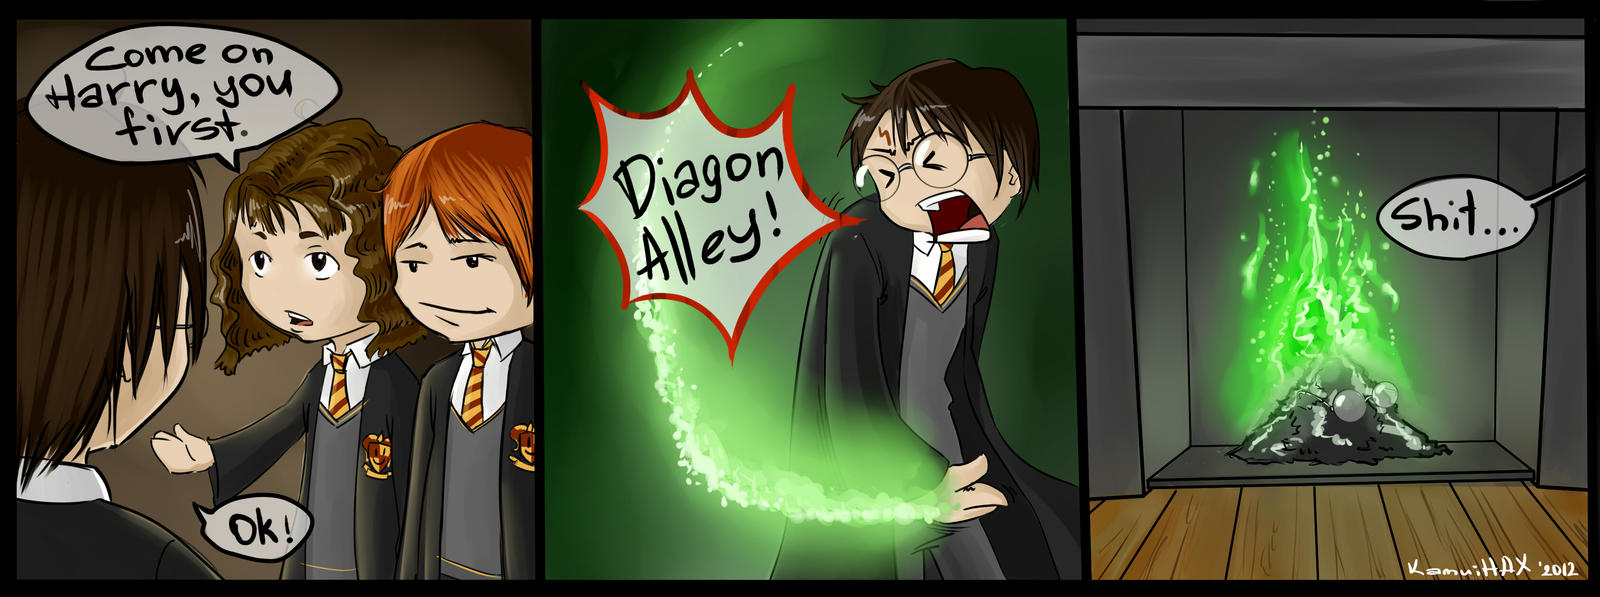 Harry Potter [Strip] by KamuiHAX